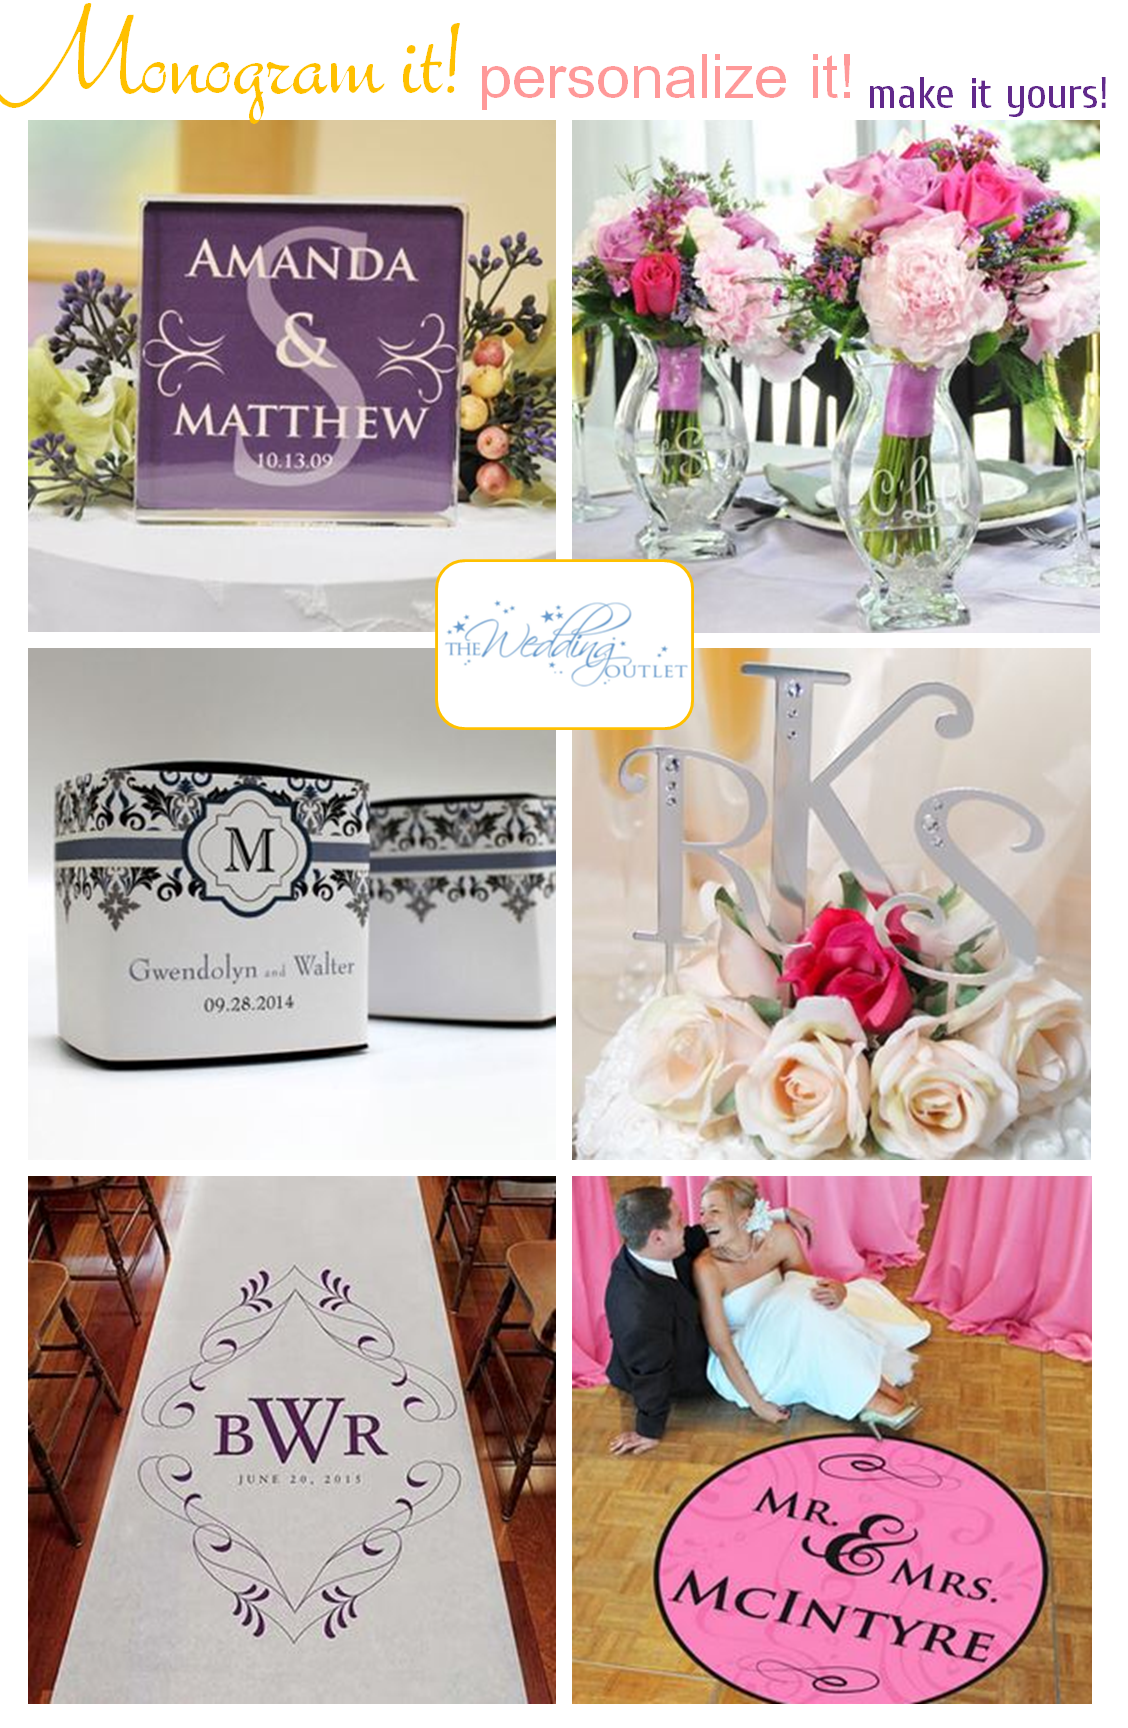 Sponsored Post The Wedding Outlet Wedding Outlet Wedding Planning Boards Post Wedding